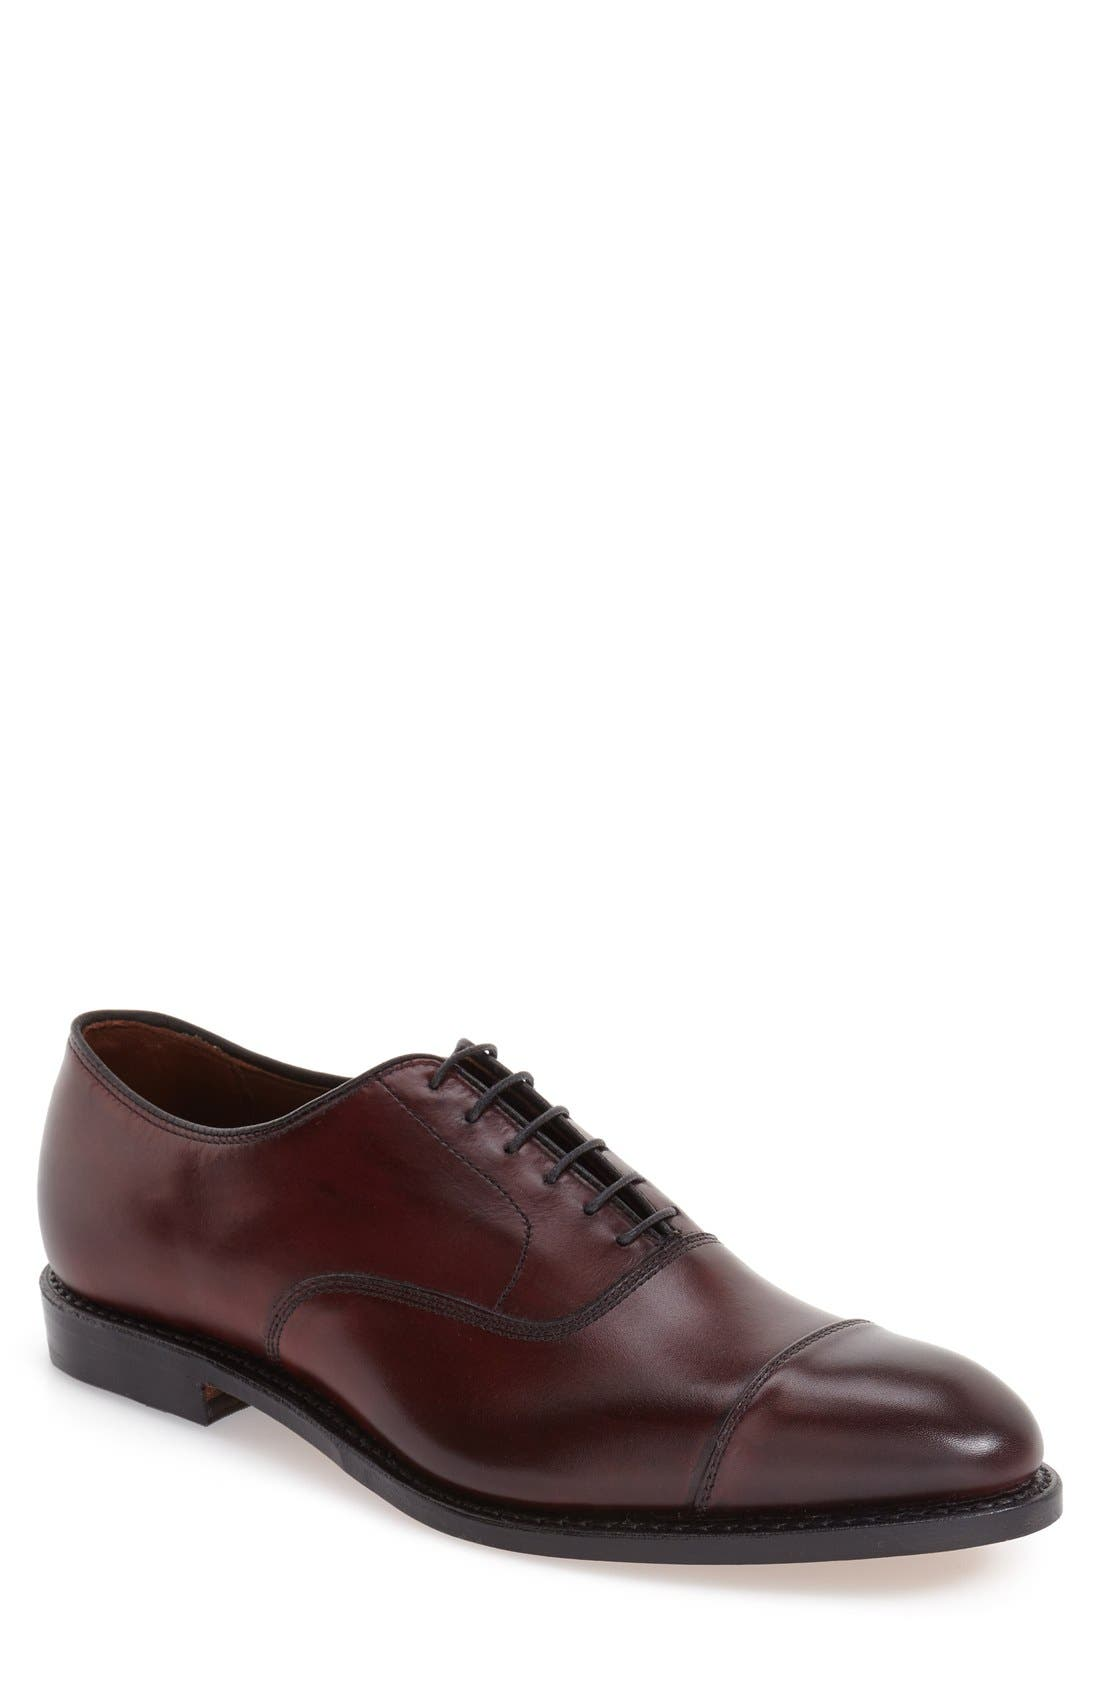 'Park Avenue' Cap Toe Oxford,                             Main thumbnail 1, color,                             Oxblood